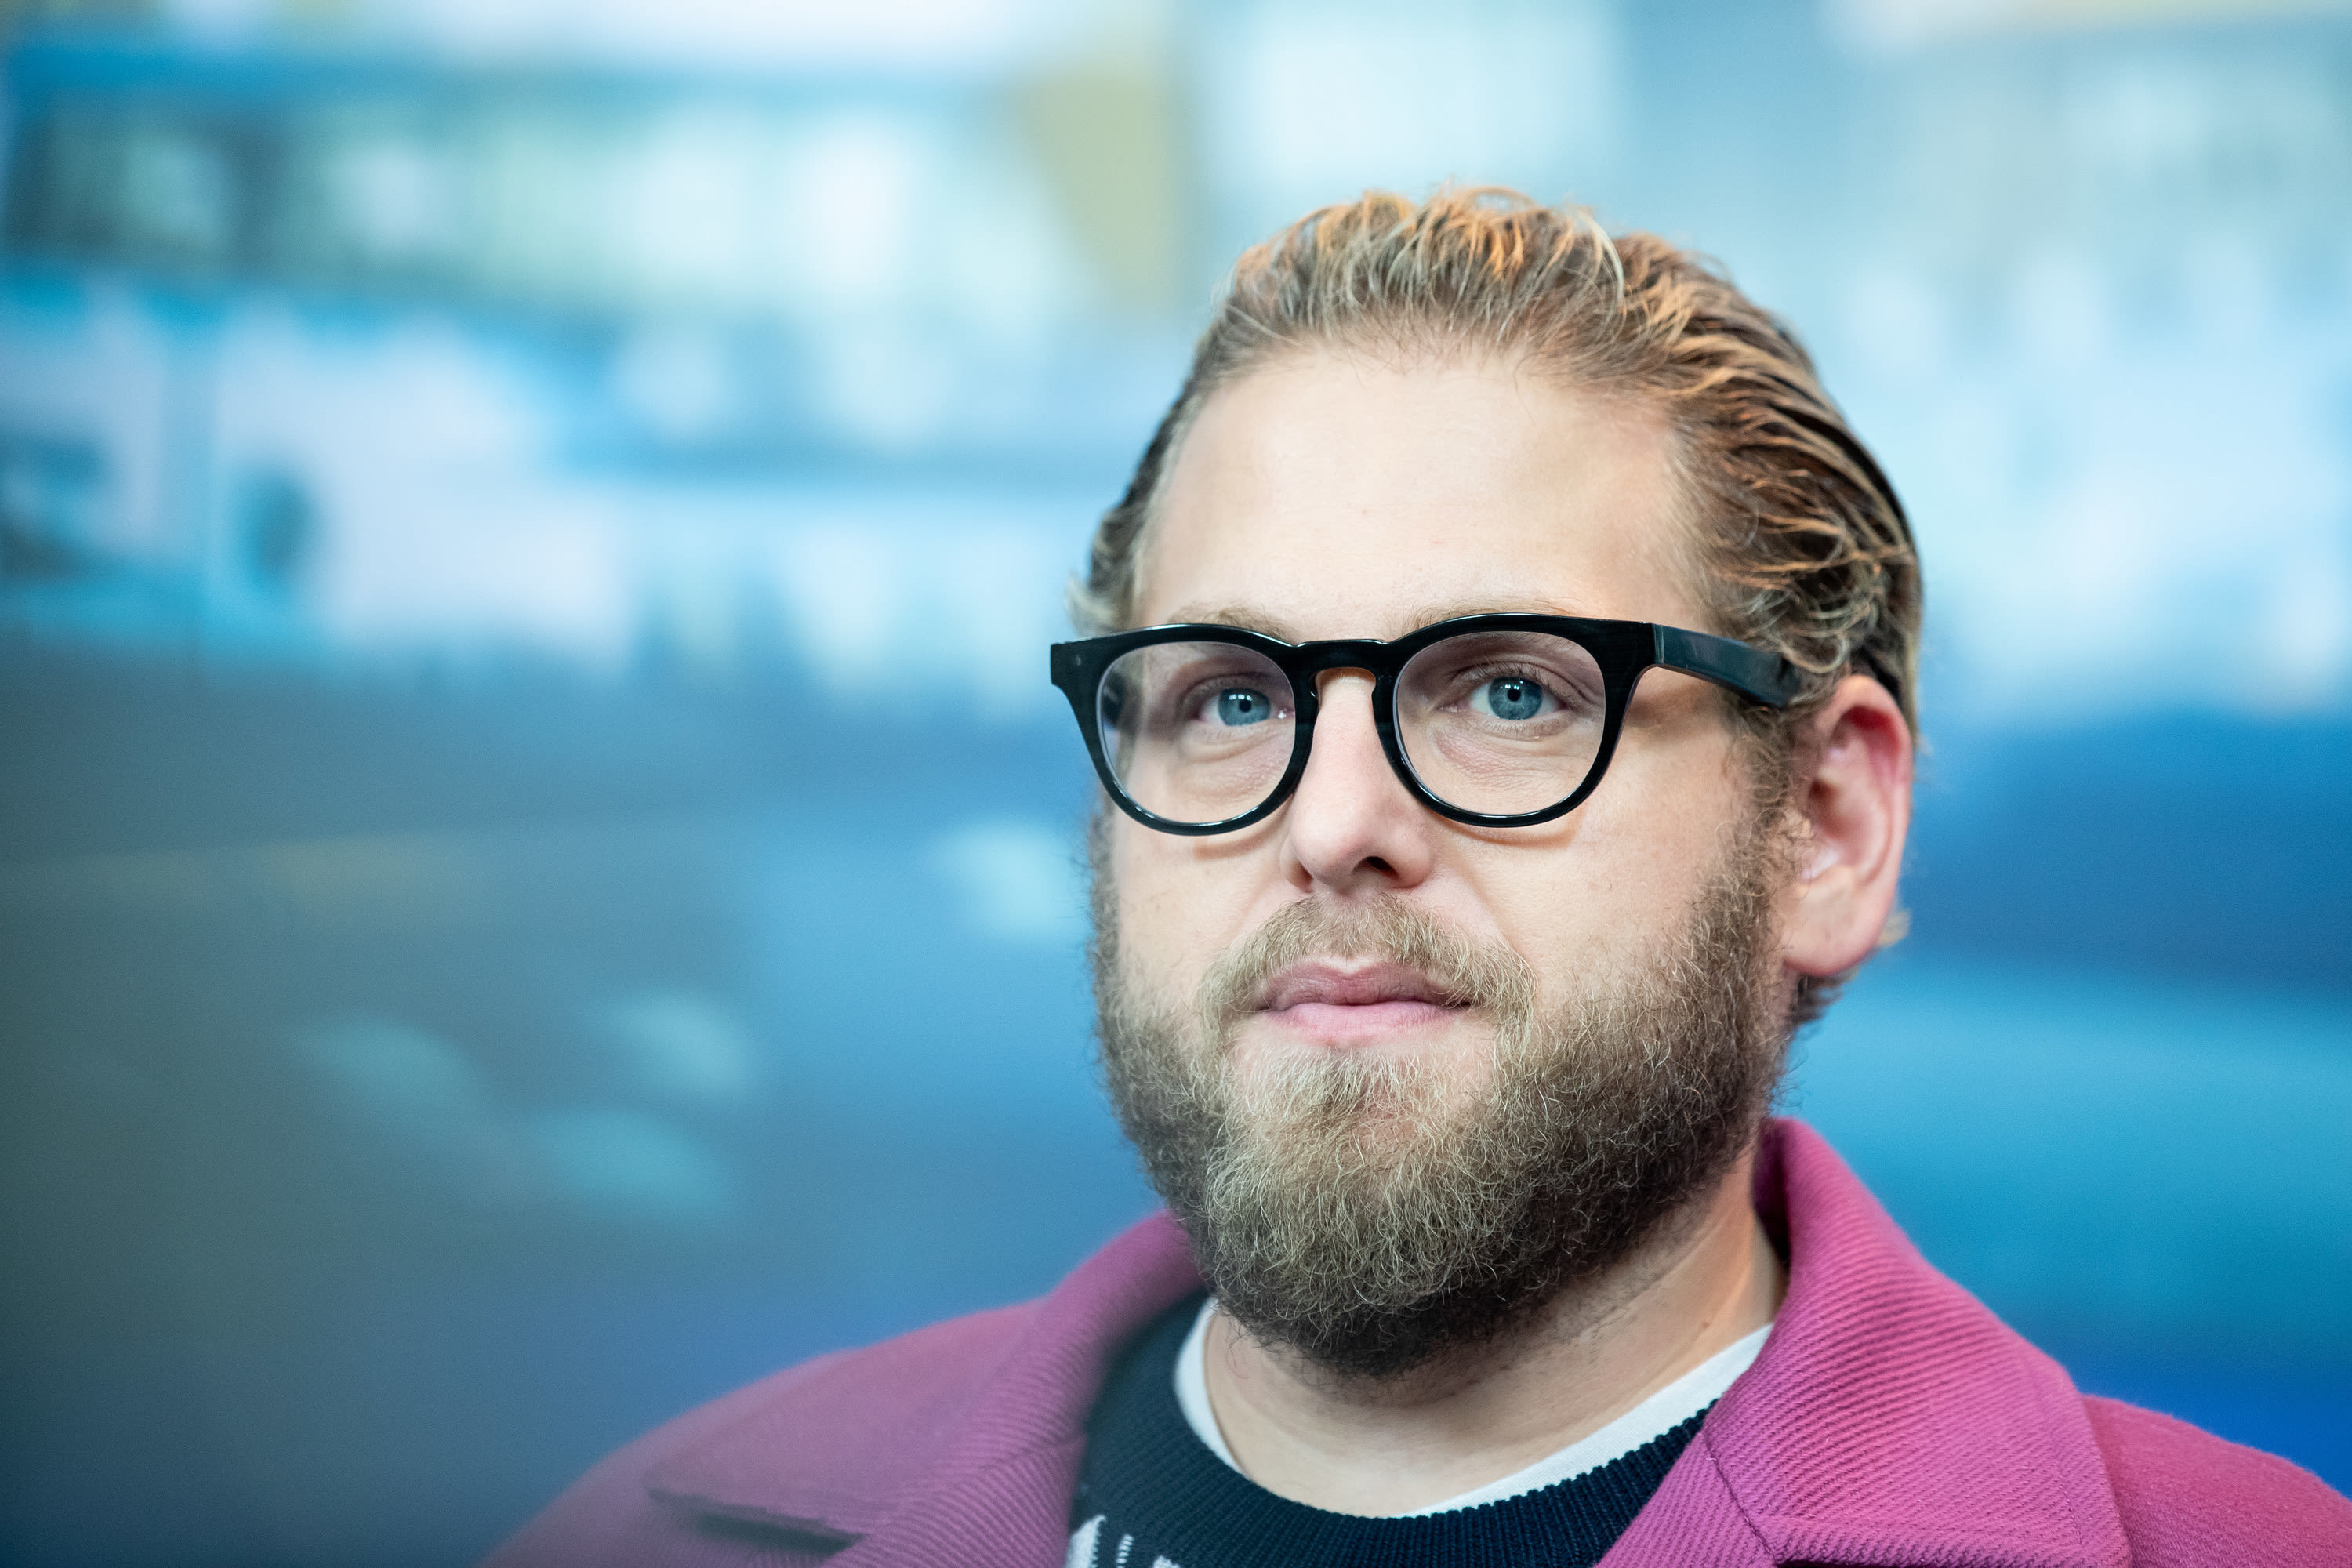 A head shot of Jonah with glasses and a beard